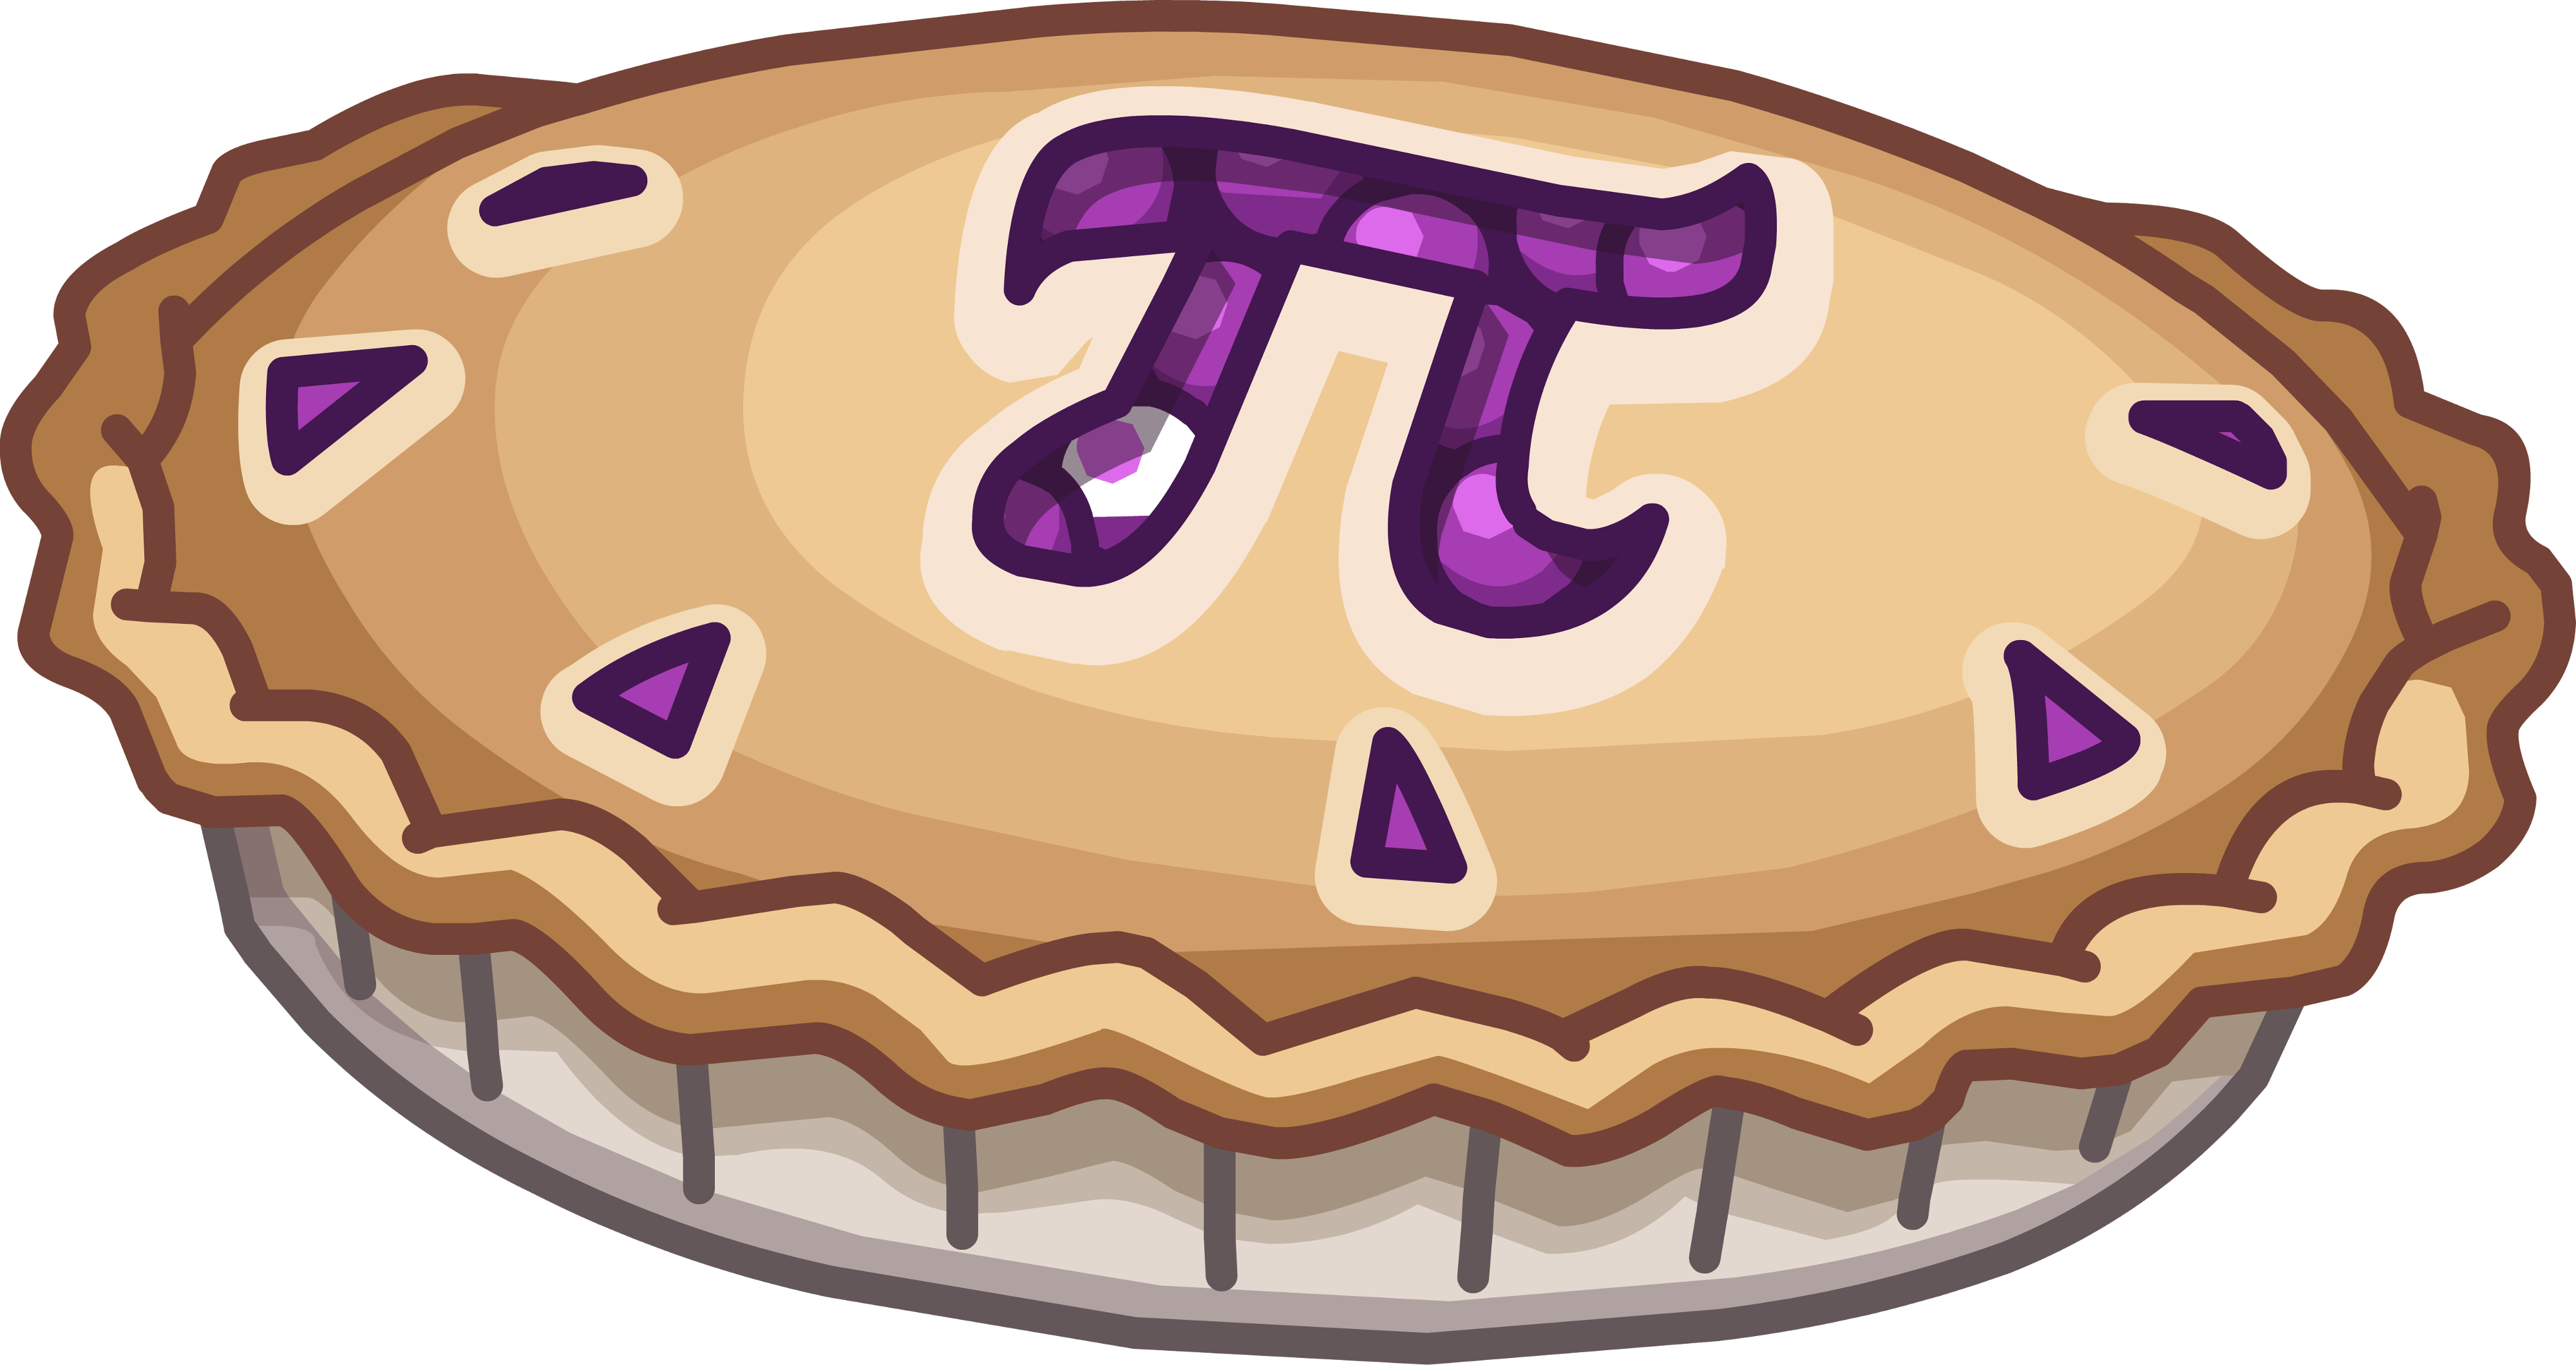 Happy National Pi Day 2018 Images Hd Pictures Of National Pi Day 2018 Pi Day Pie Day Image